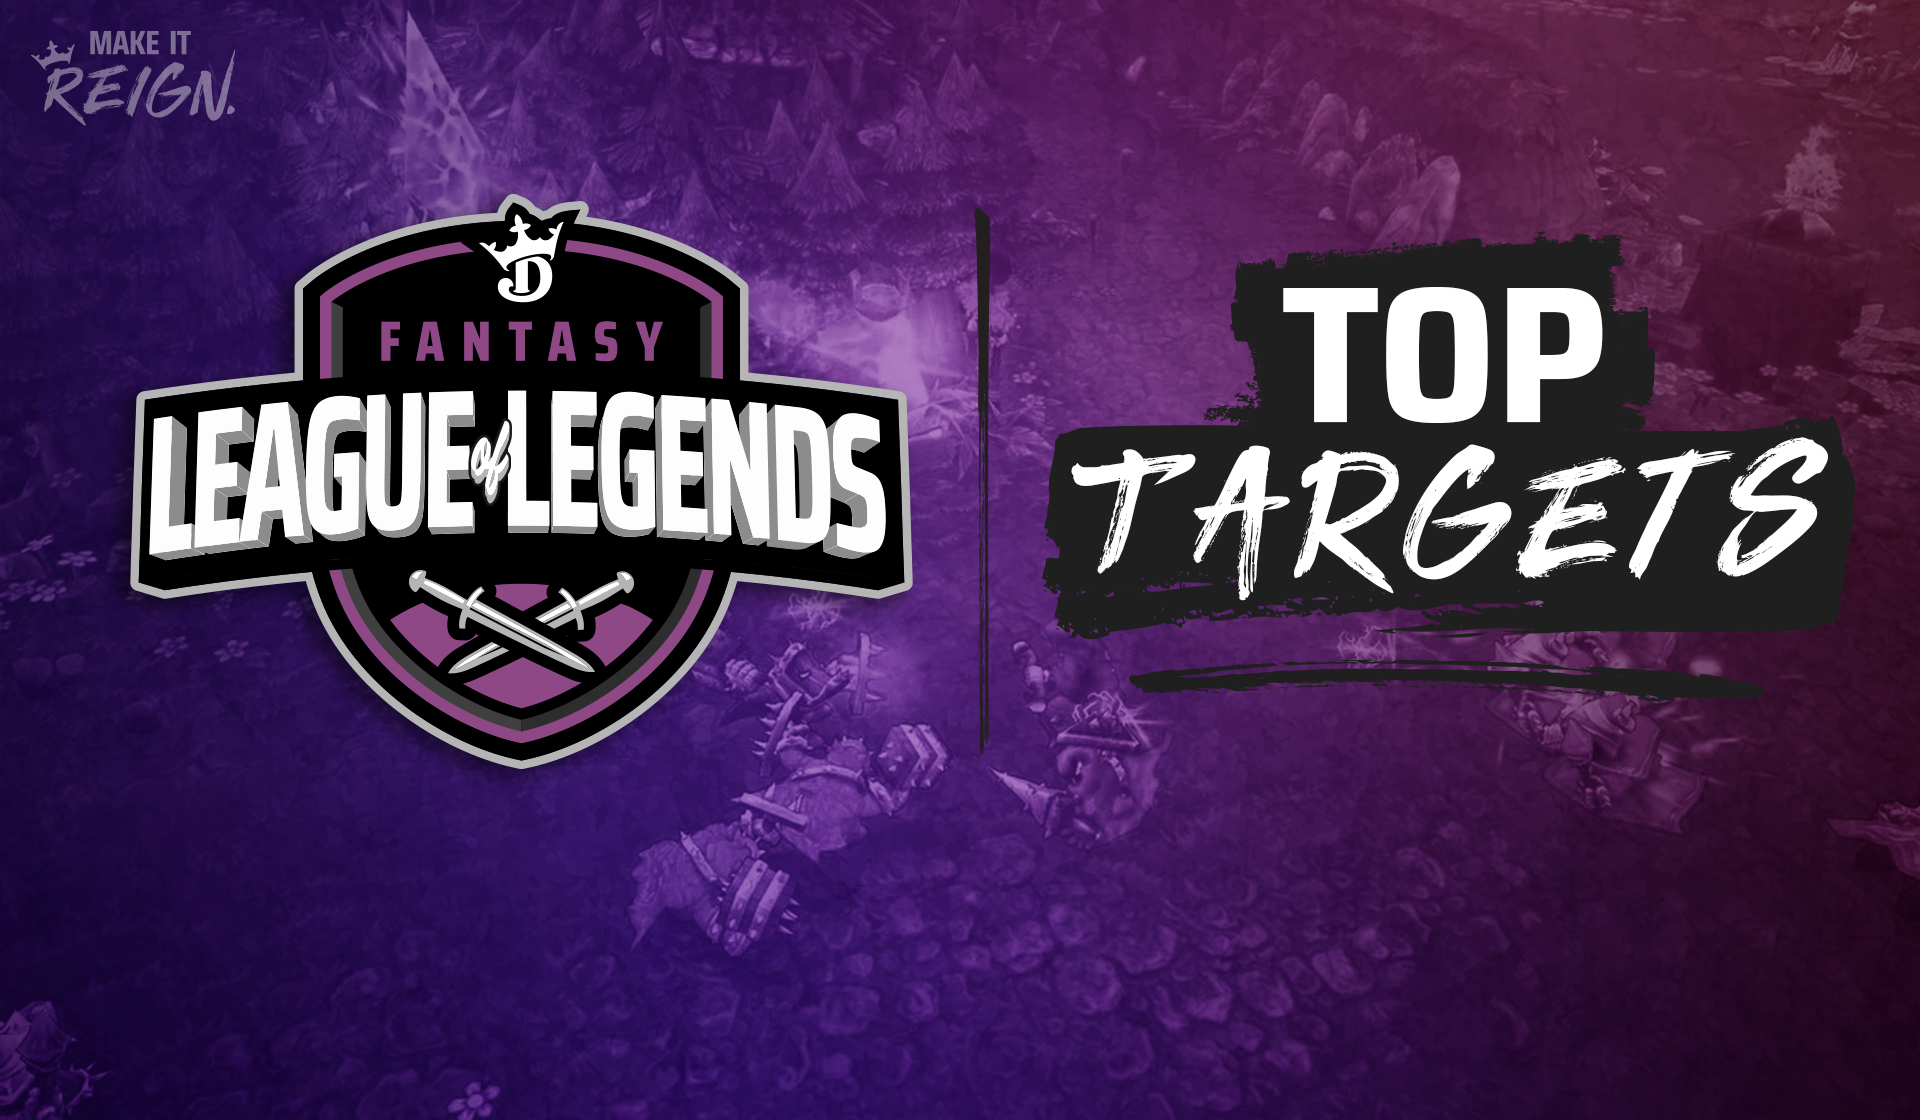 League of Legends purple/black